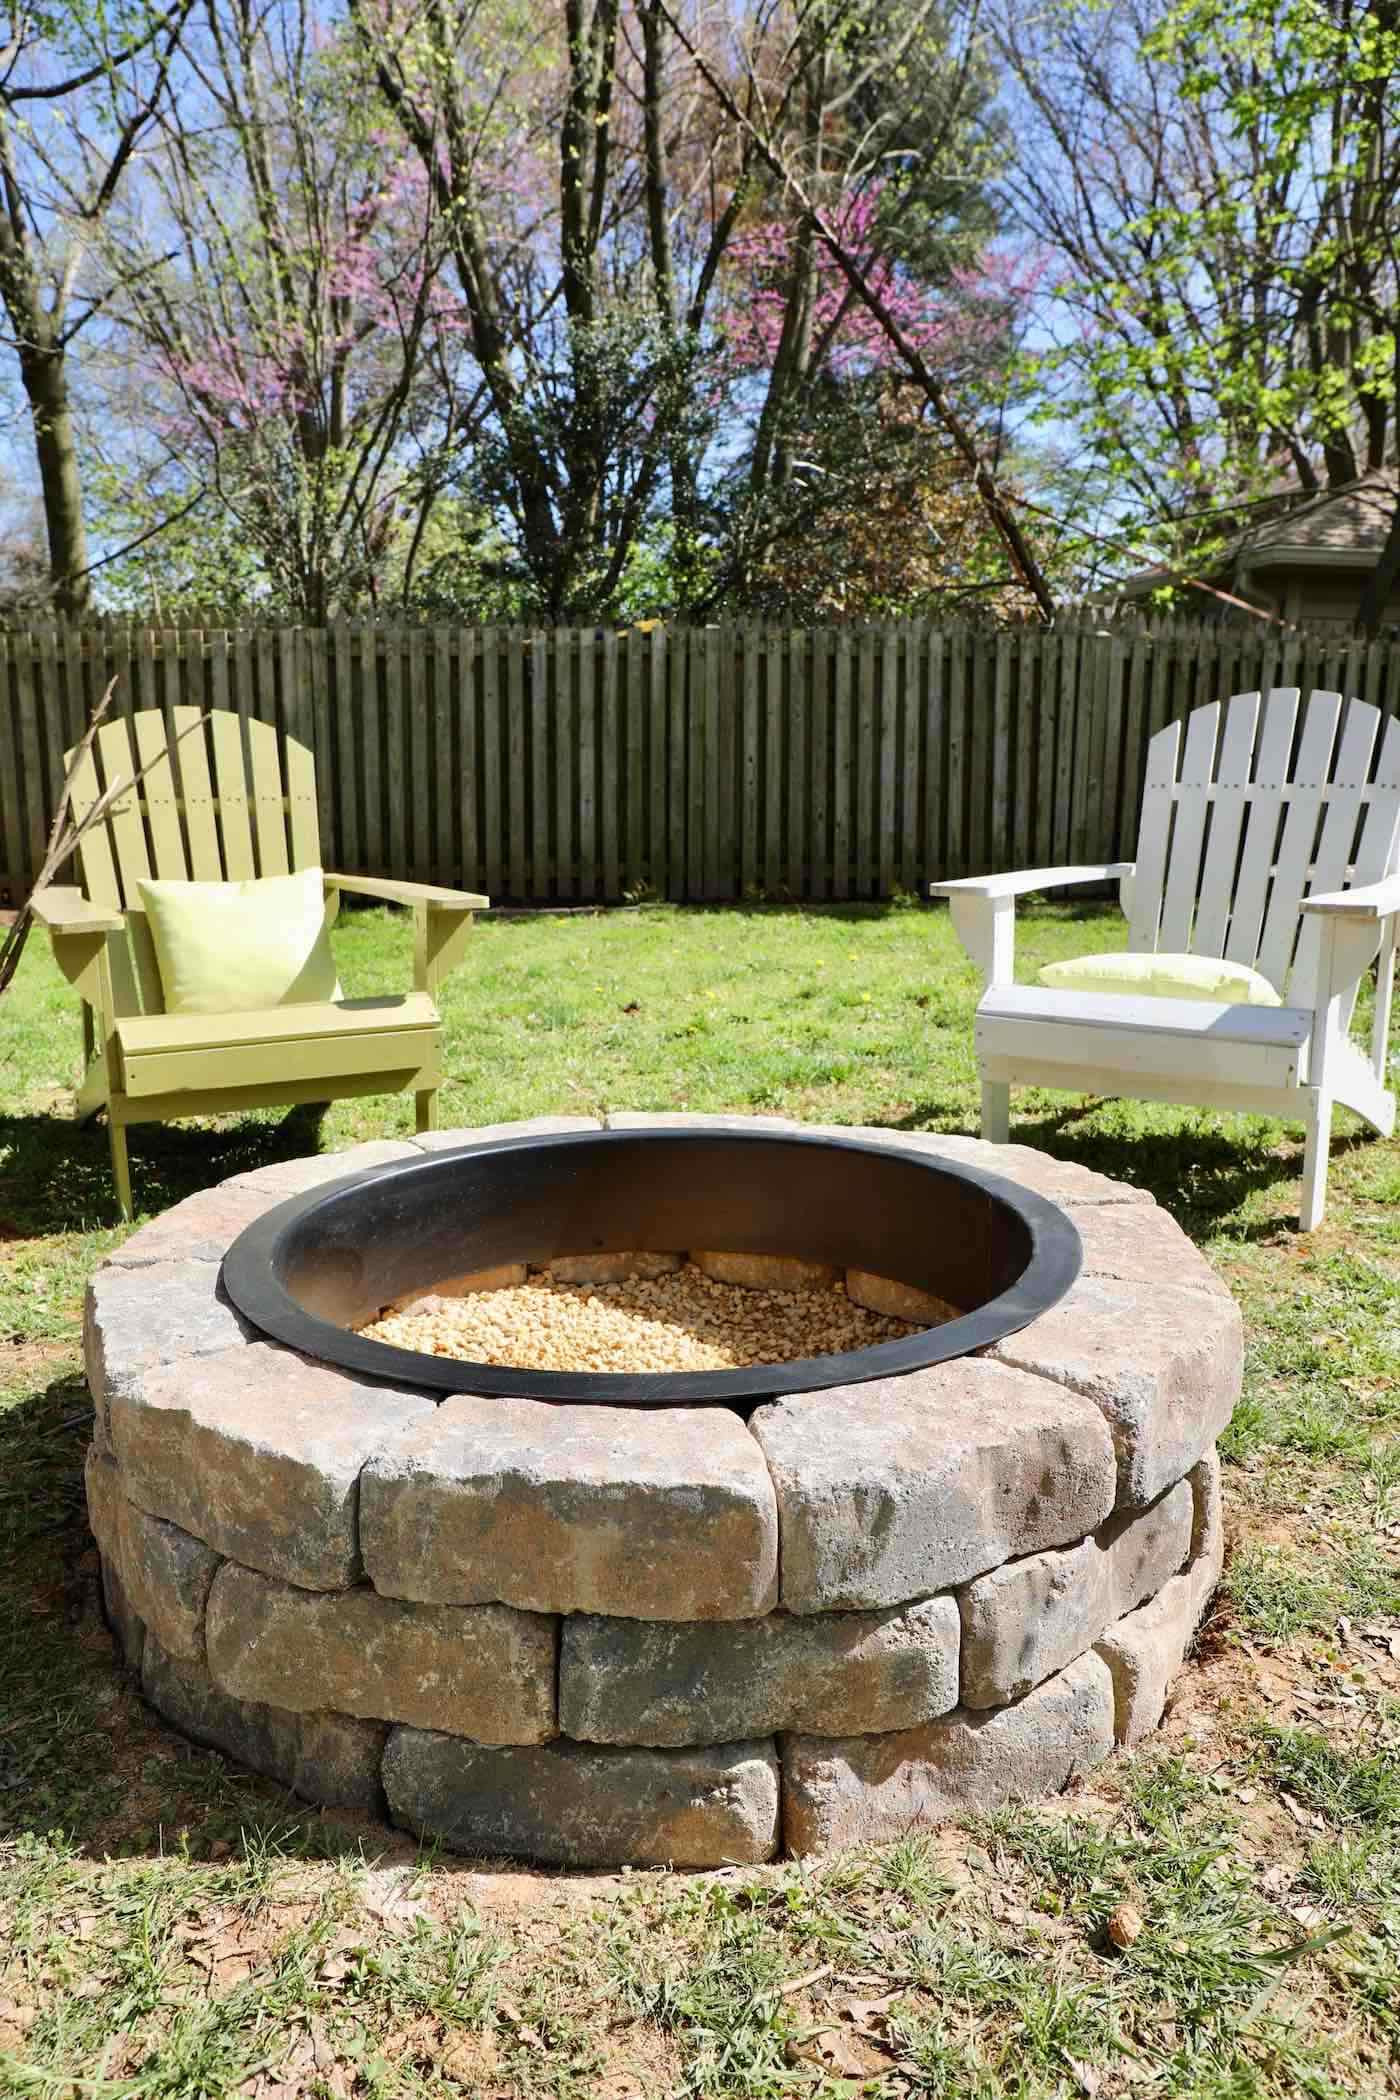 Built In Firepit  How to Build a Fire Pit in Your Backyard I Used a Fire